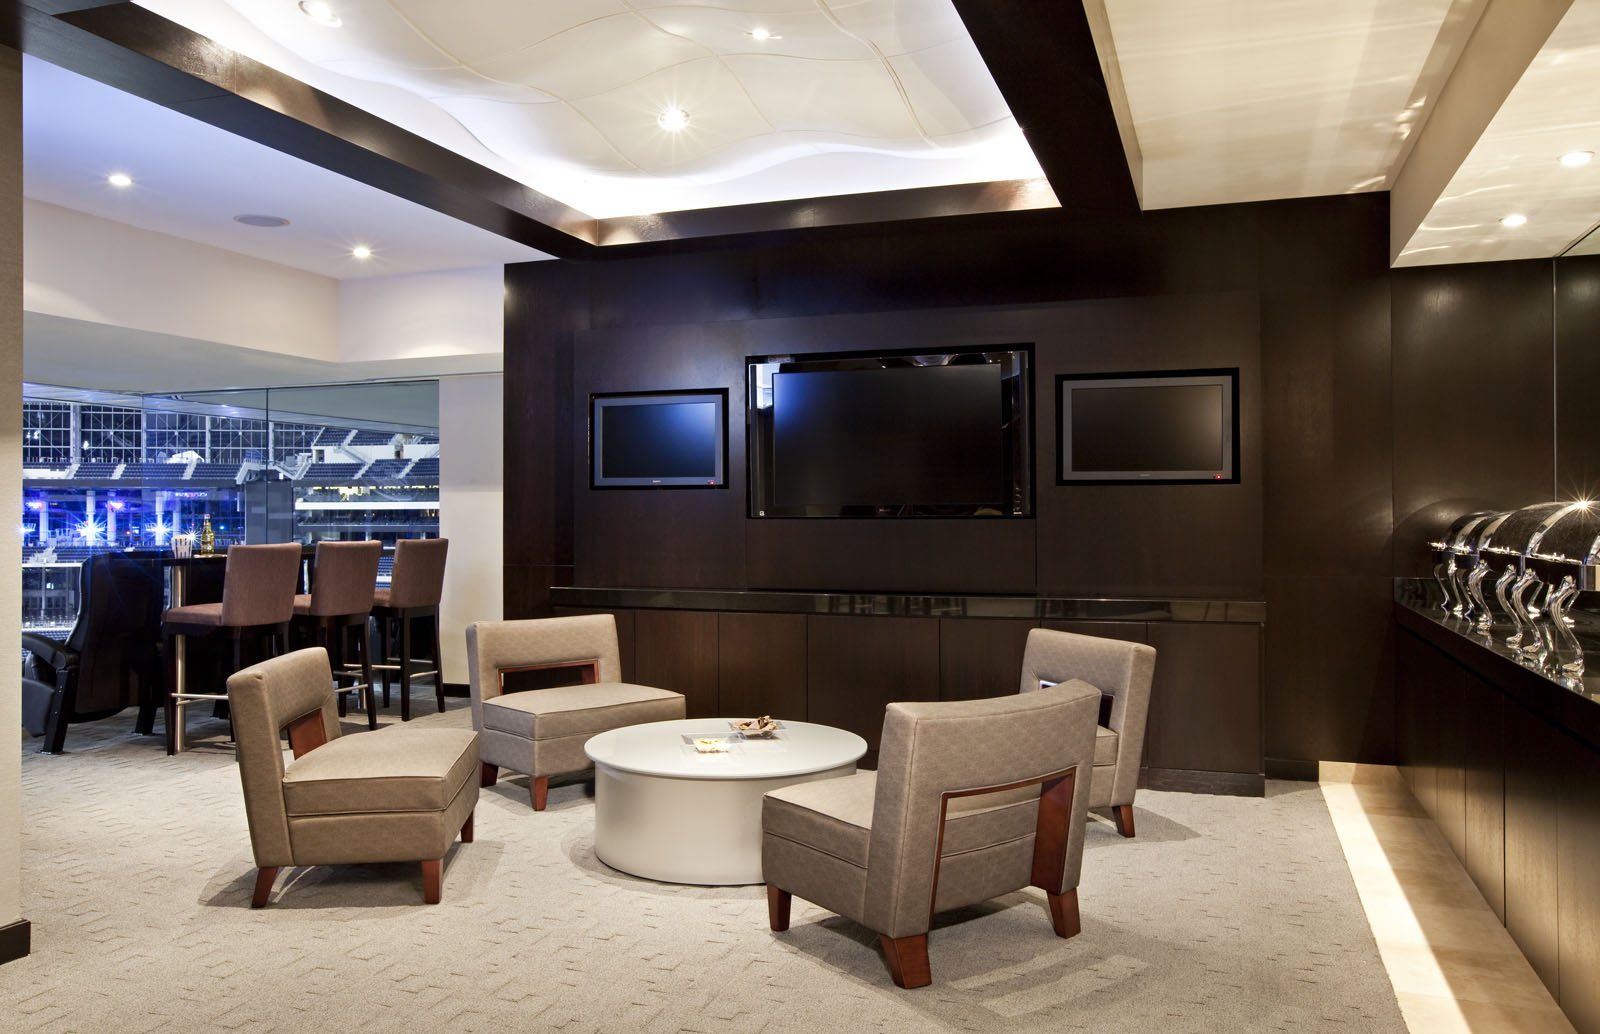 Super bowl luxury suites and super bowl packages new for Mercedes benz stadium suite prices